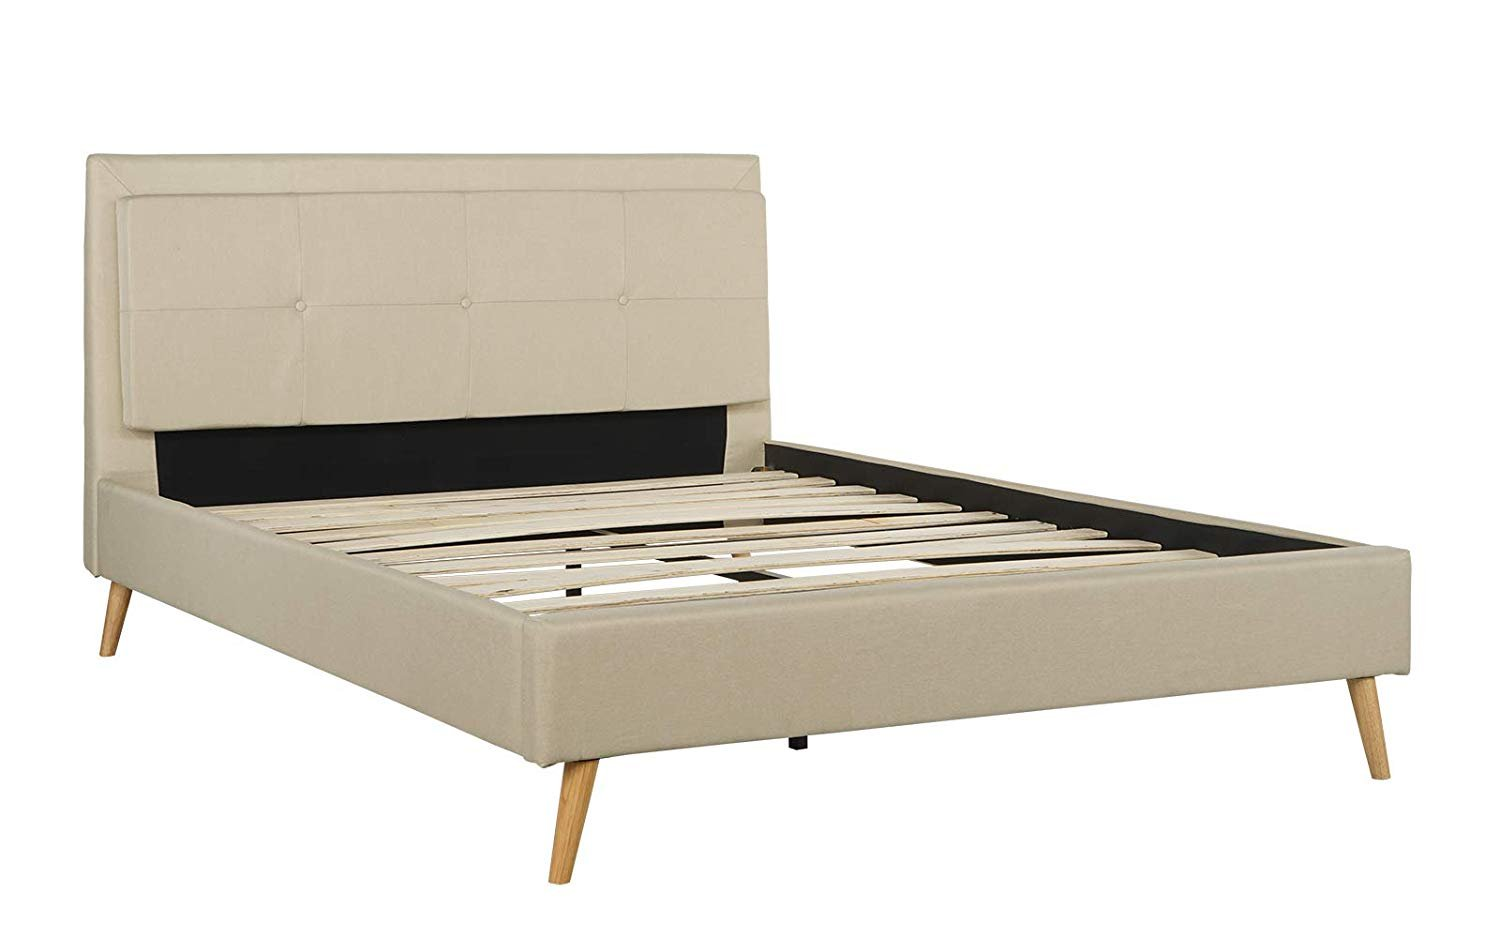 Queen Size Mid Century Modern Upholstered Bed Frame Tufted Panel Headboard Beige Ebay